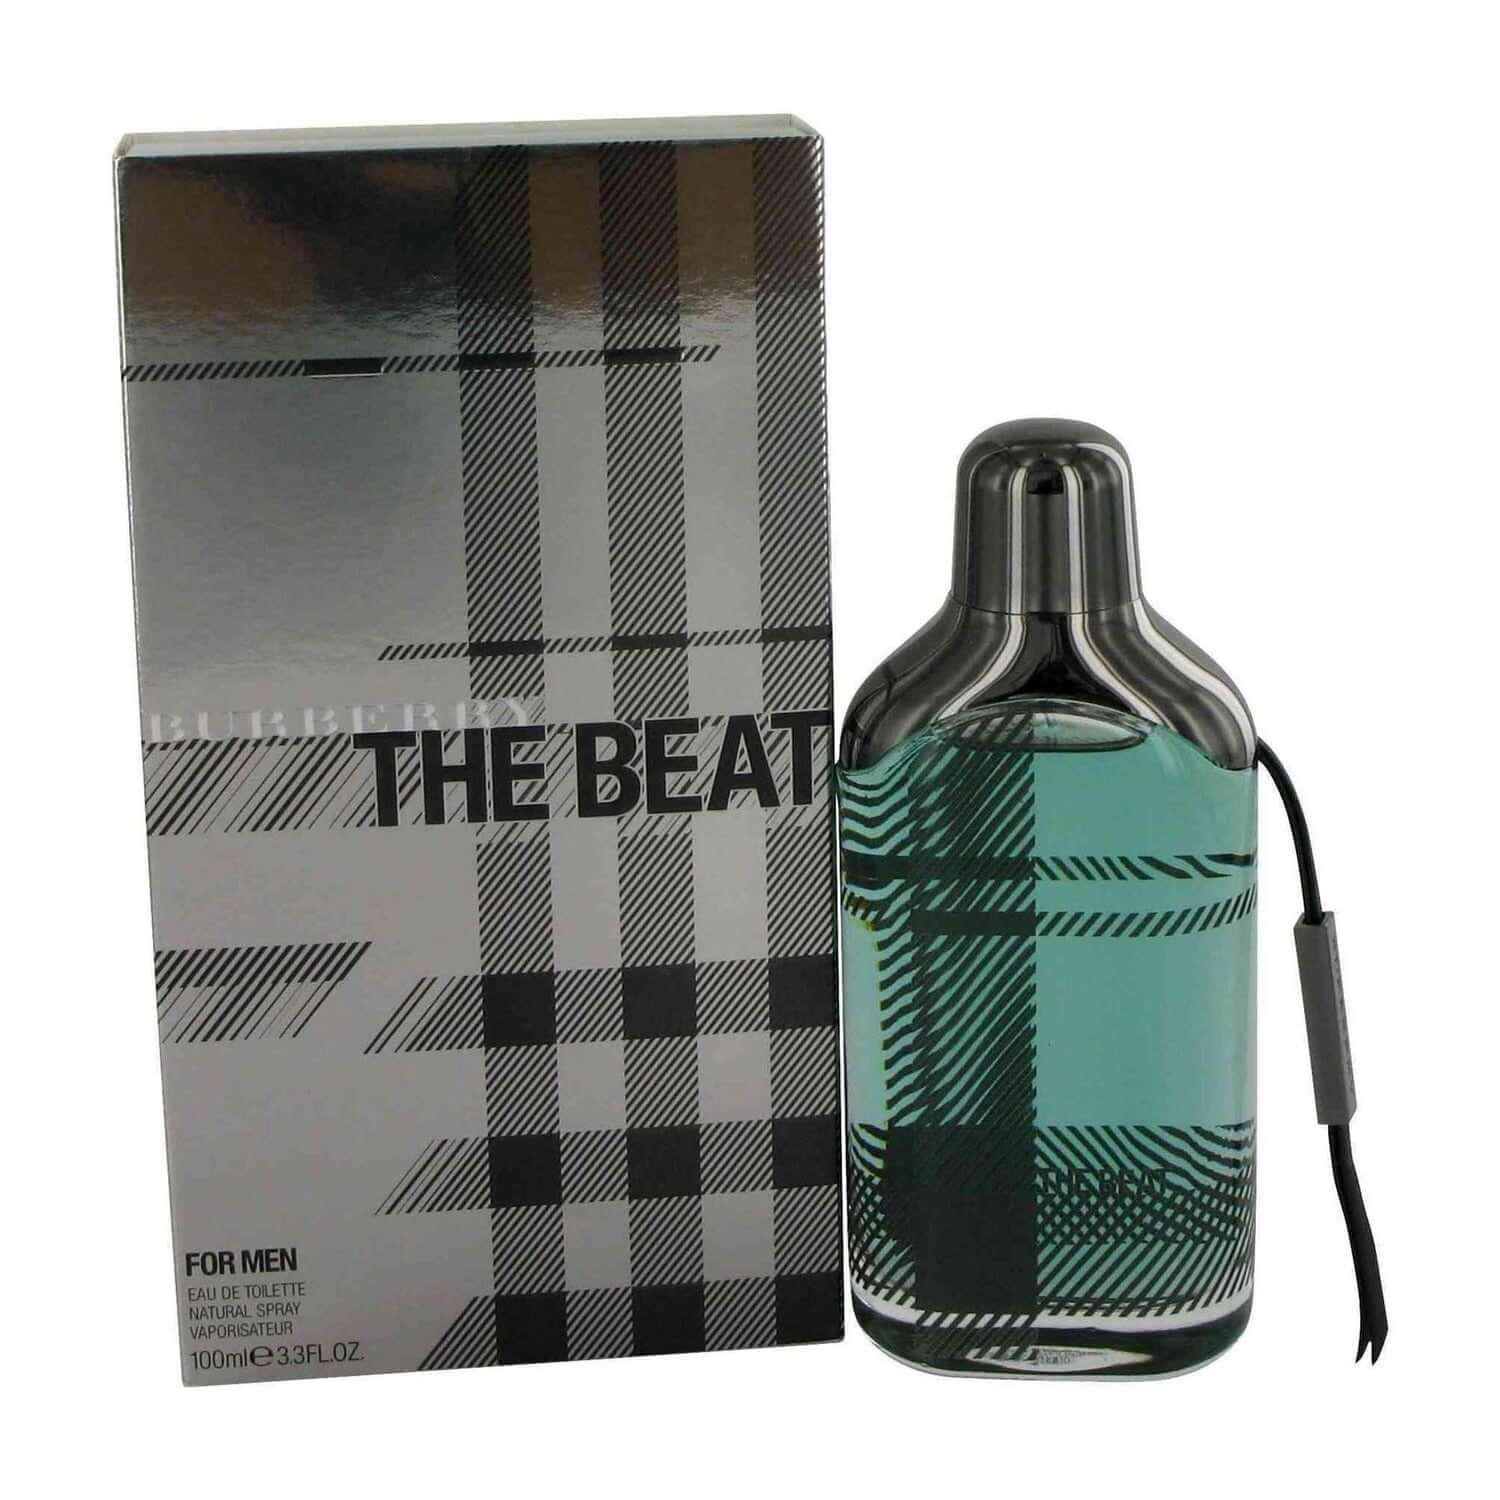 e78f4af7d15a Burberry The Beat Perfume 3.3 oz 3.4 EDT Cologne for Men